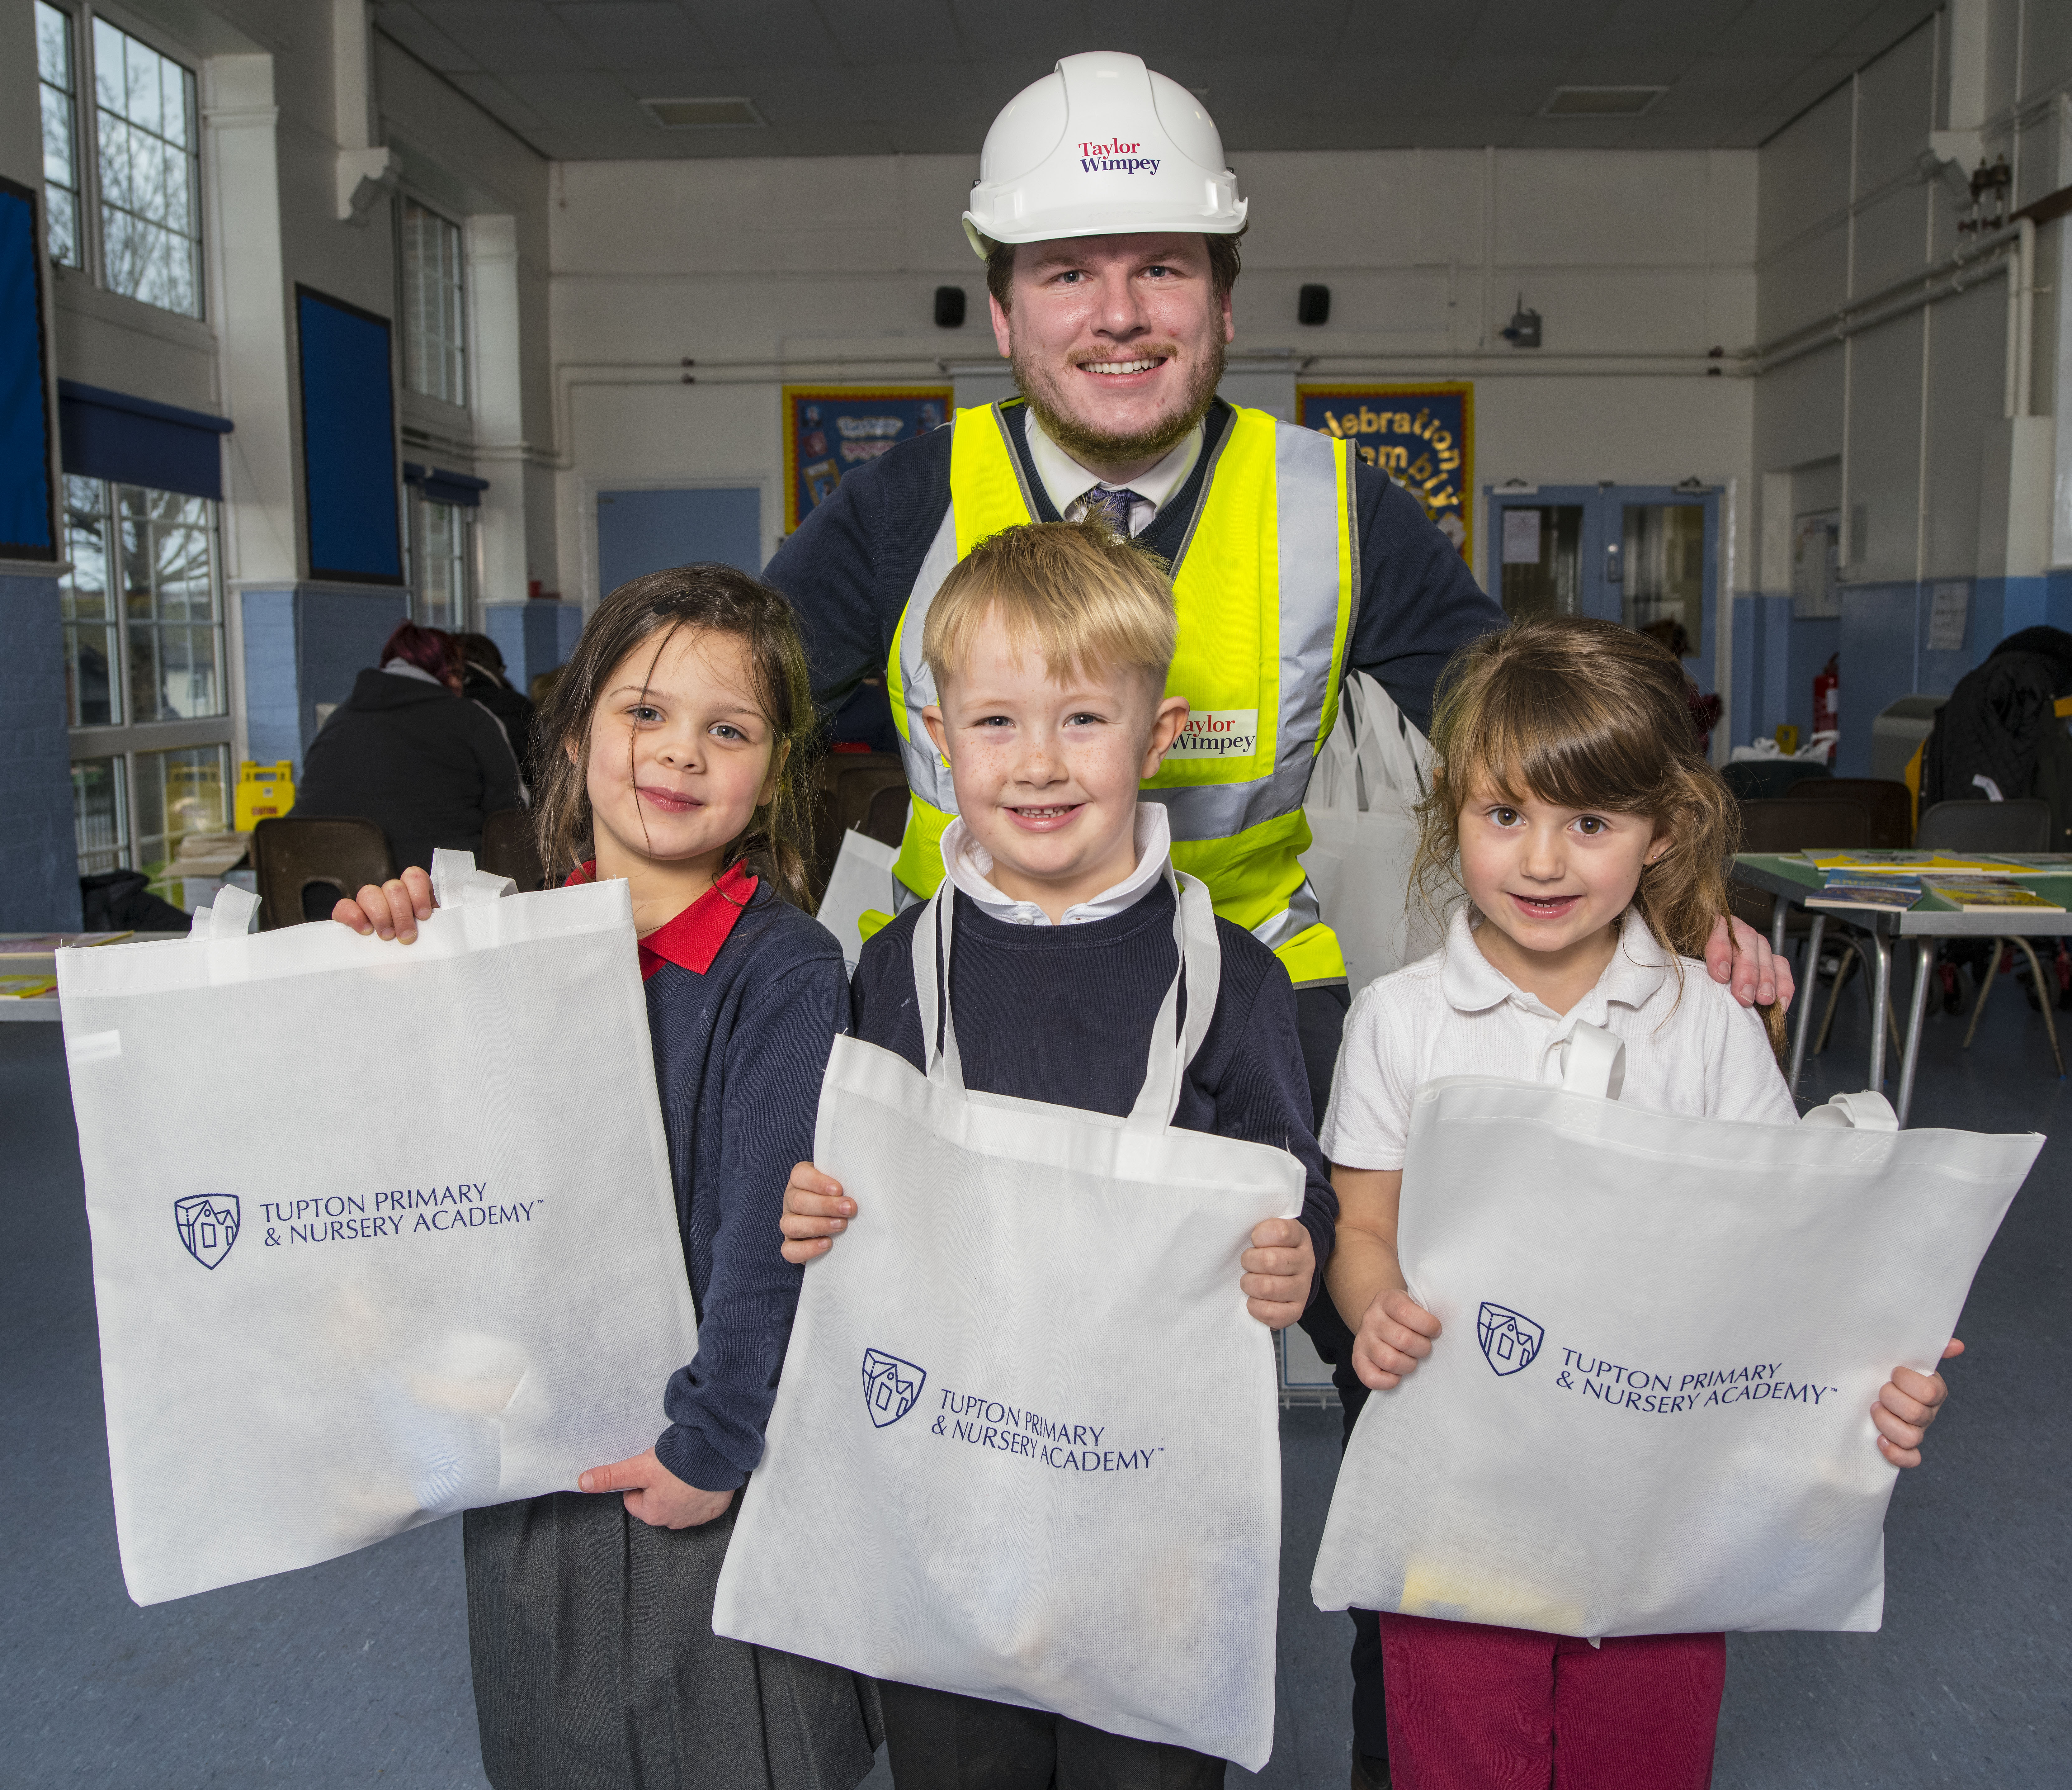 Taylor Wimpeys Edward Wragg with children from Tupton Primary